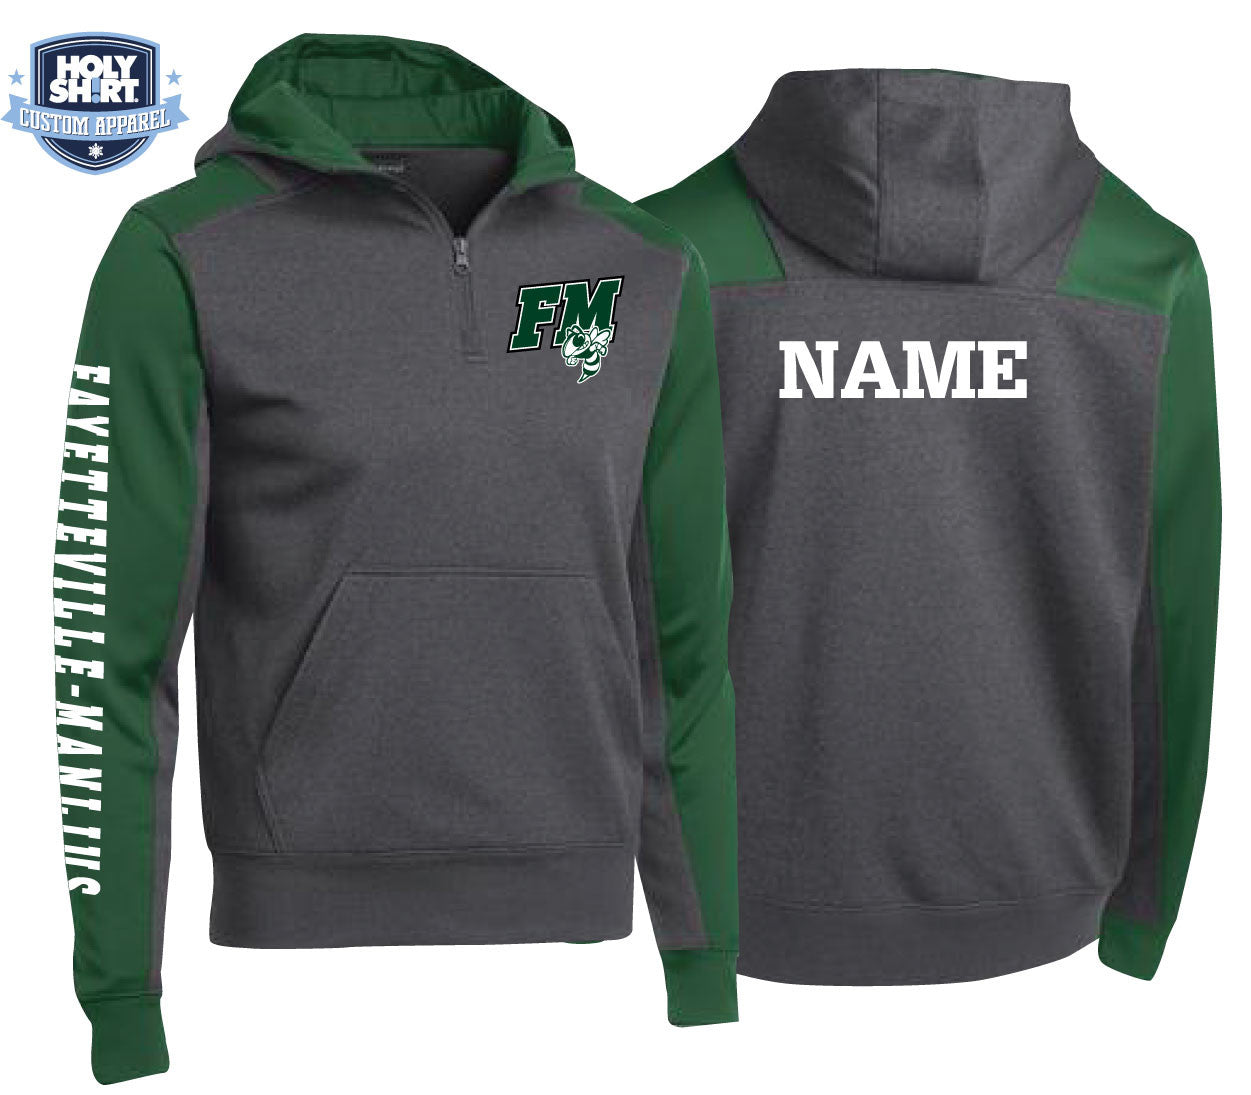 FM Hornets 1/4 Zip Performance Dry-Wick Performance Hoodies